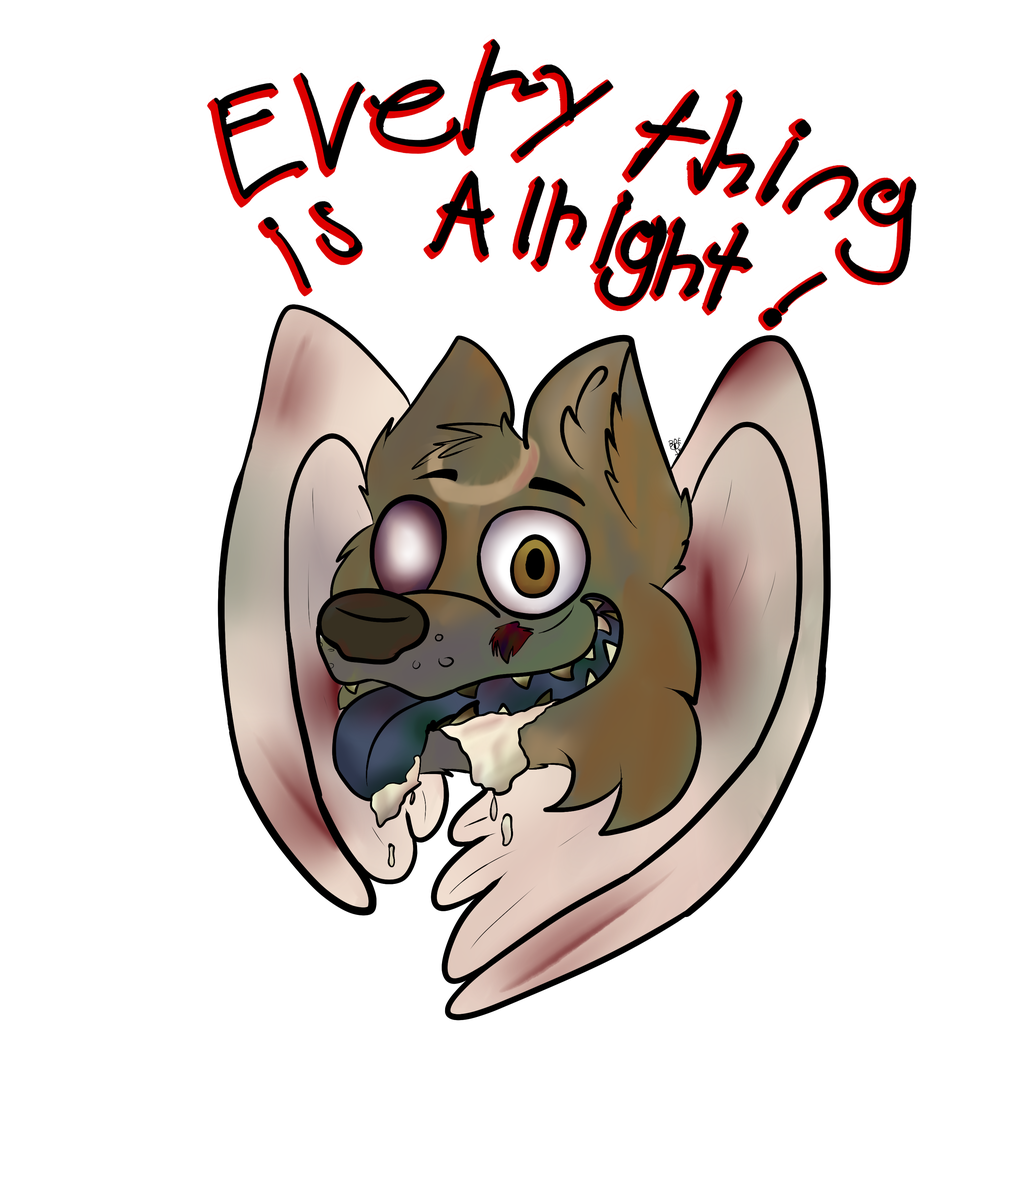 Everything is alright!